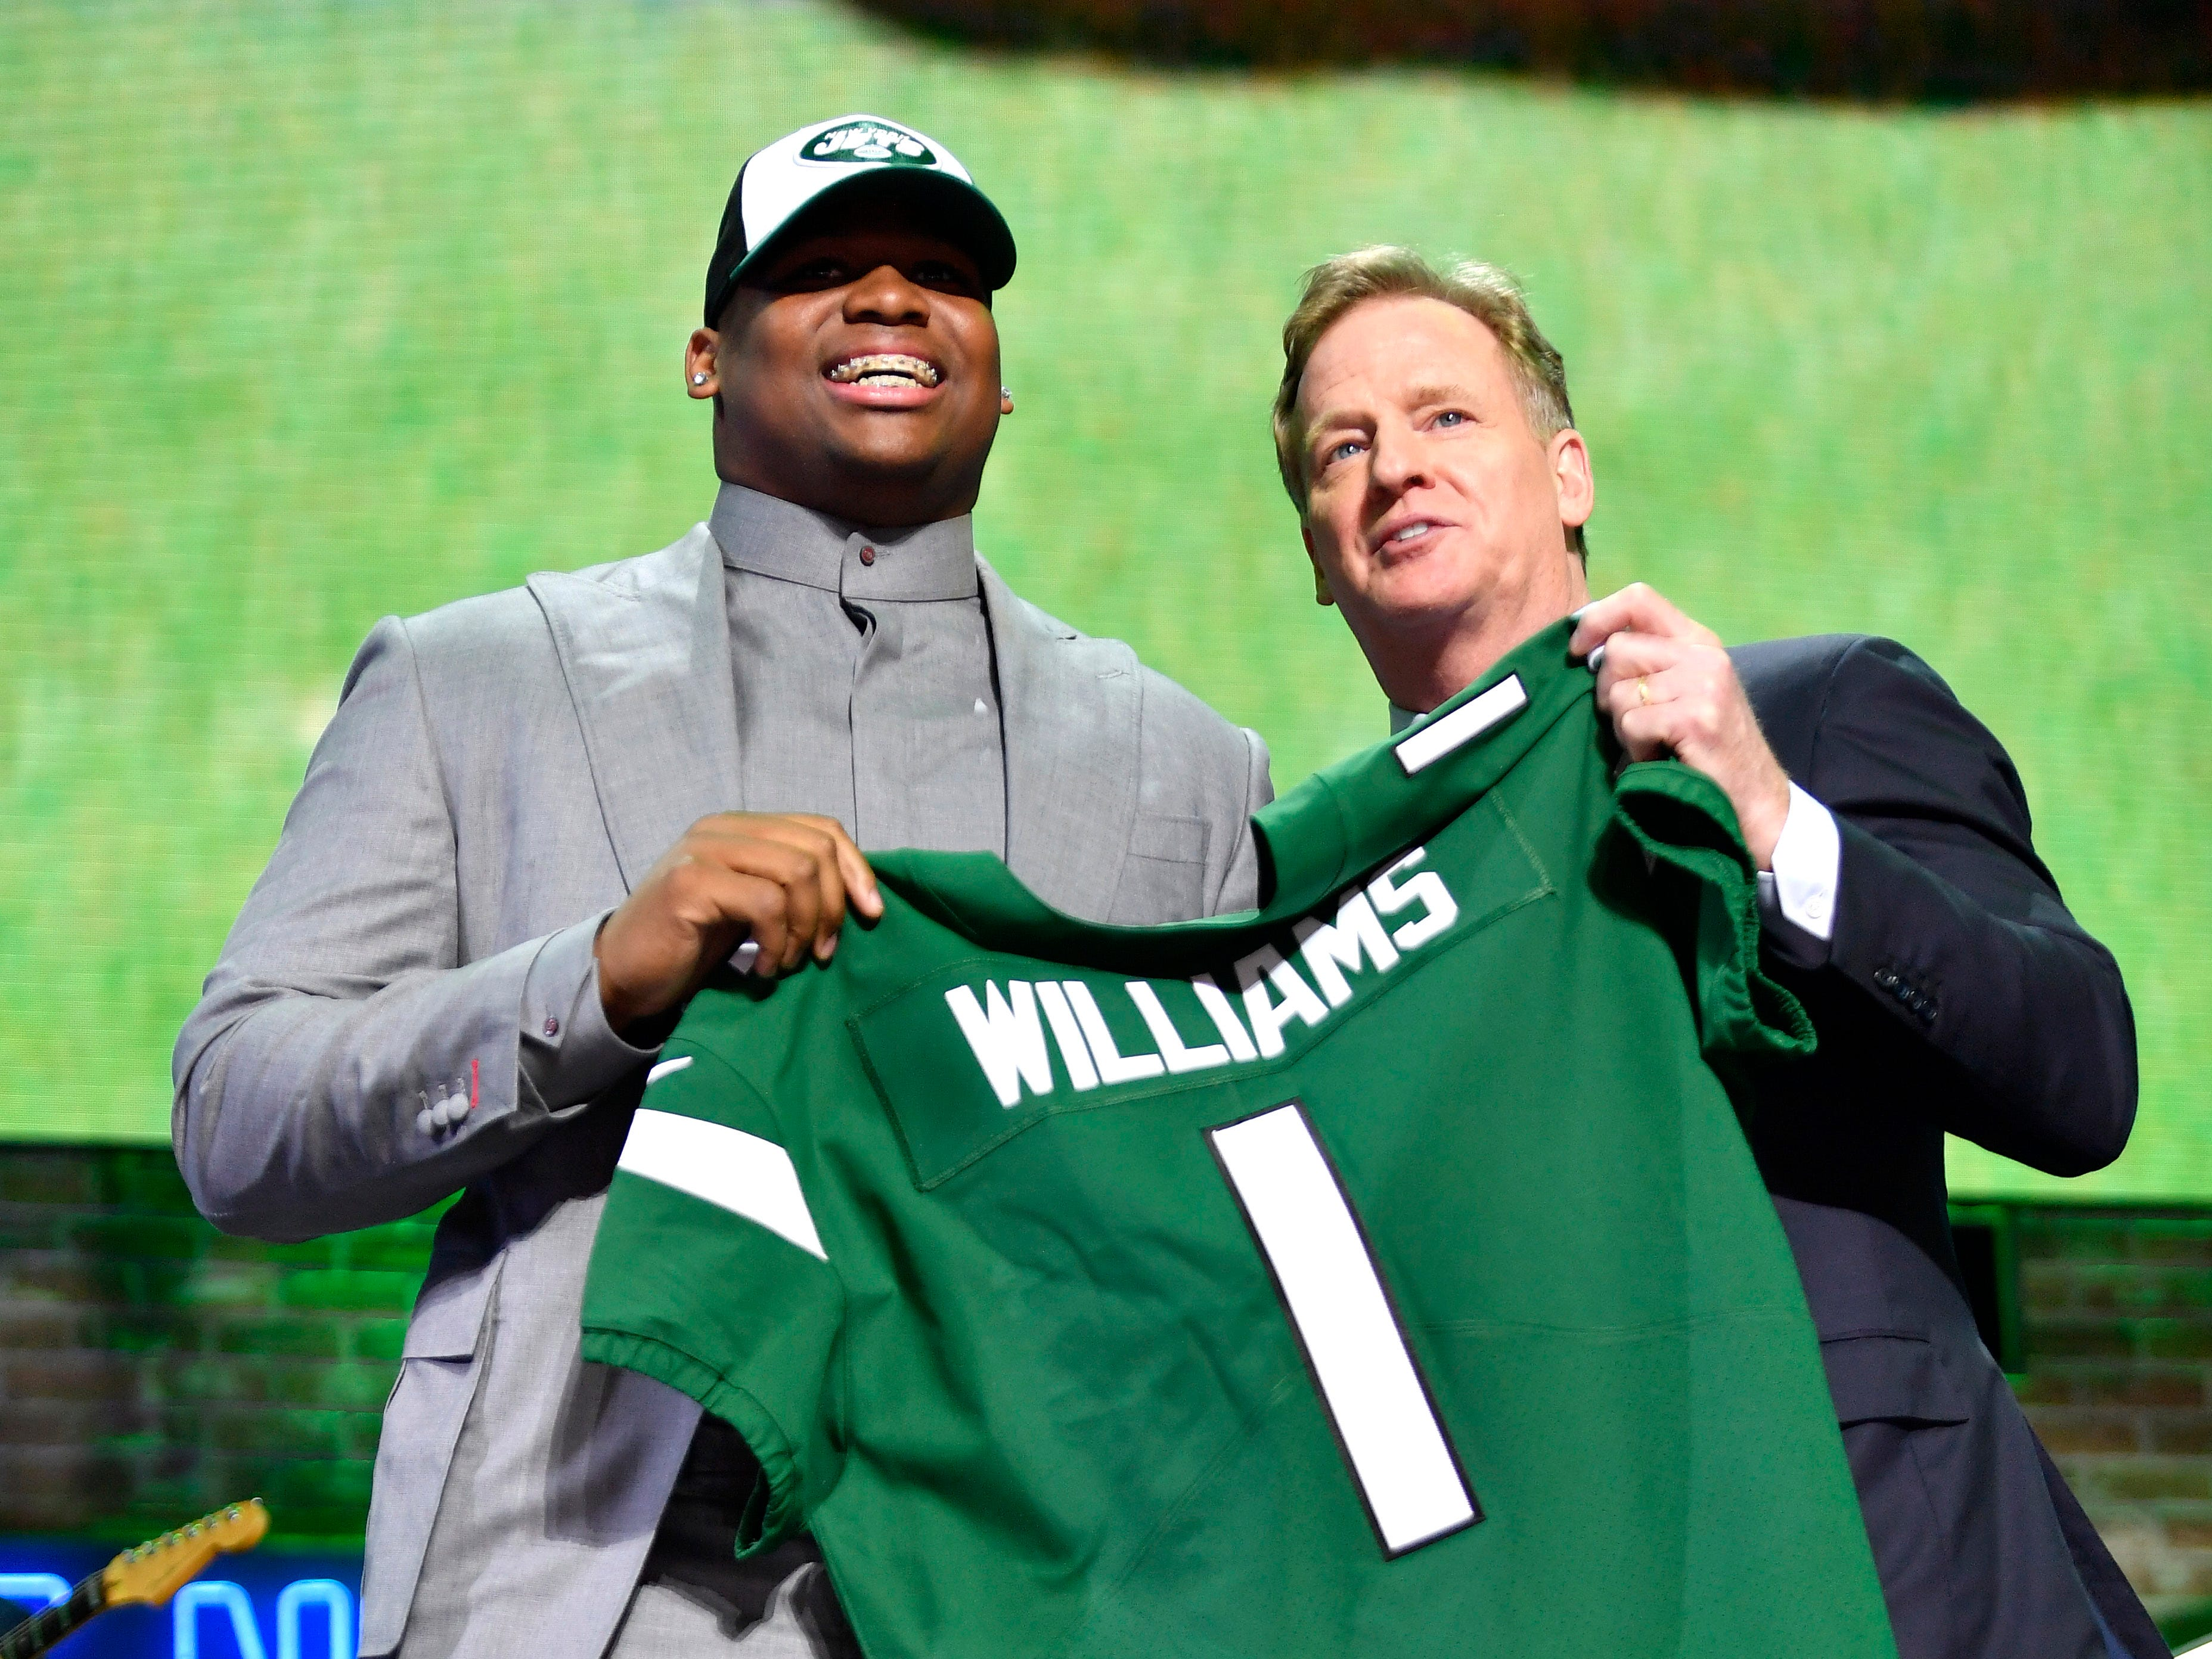 Quinnen WIlliams poses with his new Jets jersey and NFL Commissioner Roger Goodell during the first round of the NFL Draft Thursday, April 25, 2019, in Nashville, Tenn.